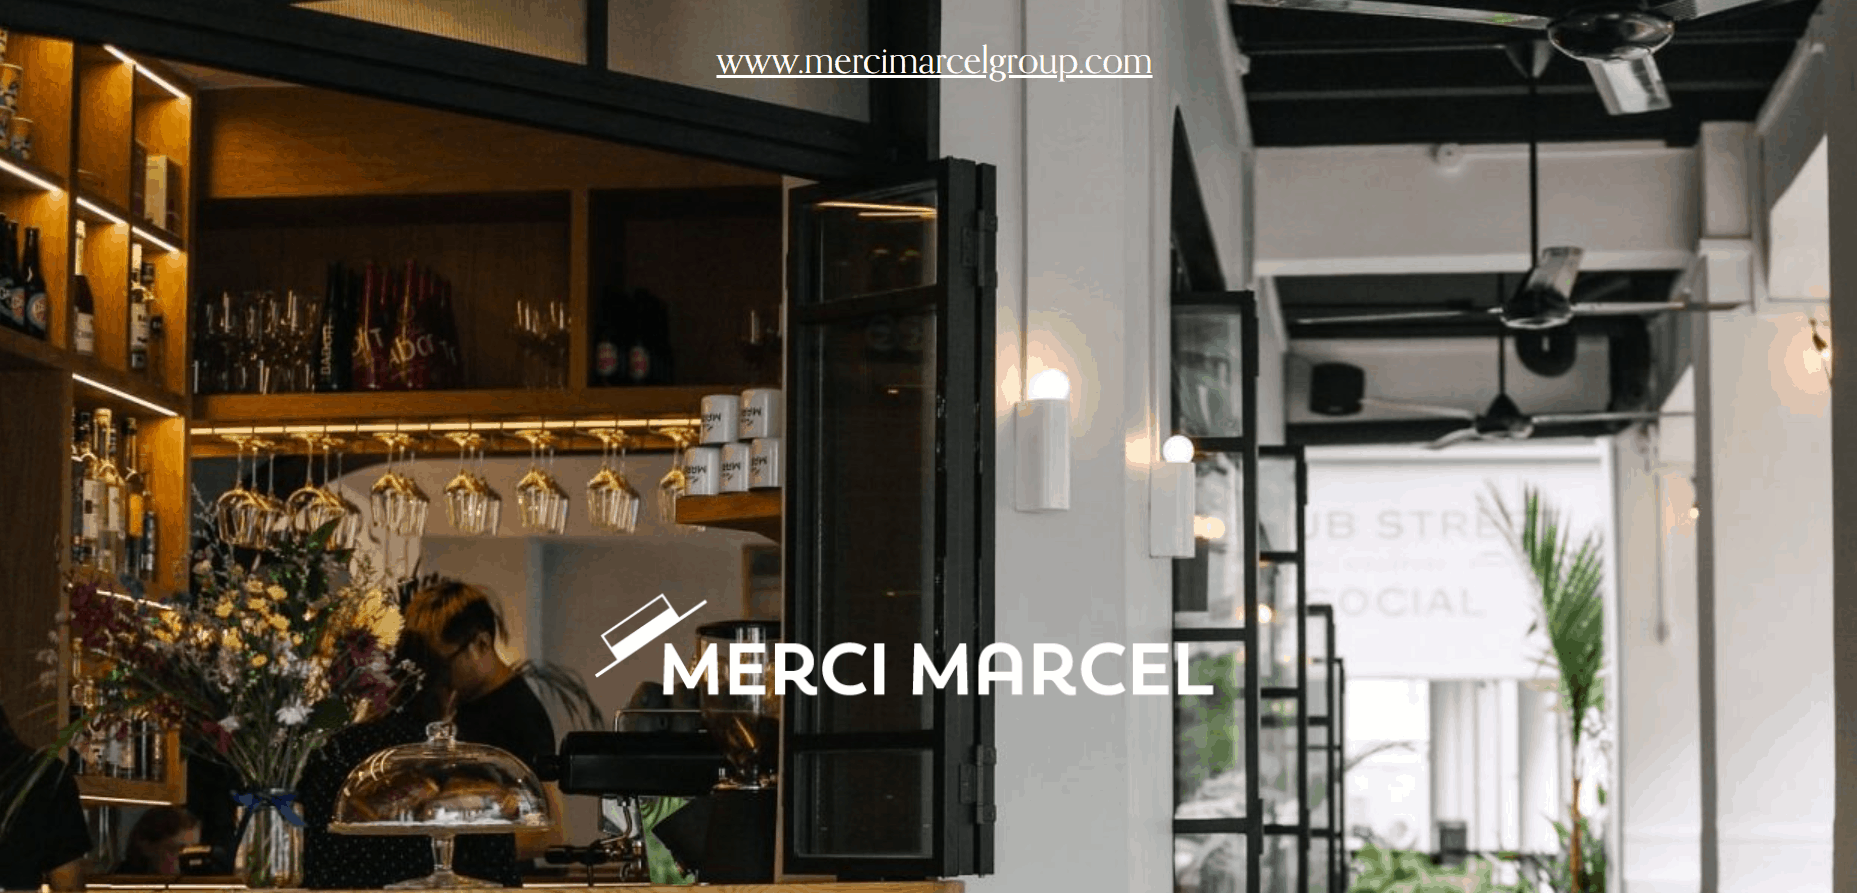 Merci Marcel is the 10 Tiong Bahru Cafes Perfect For Weekend Brunch This Year